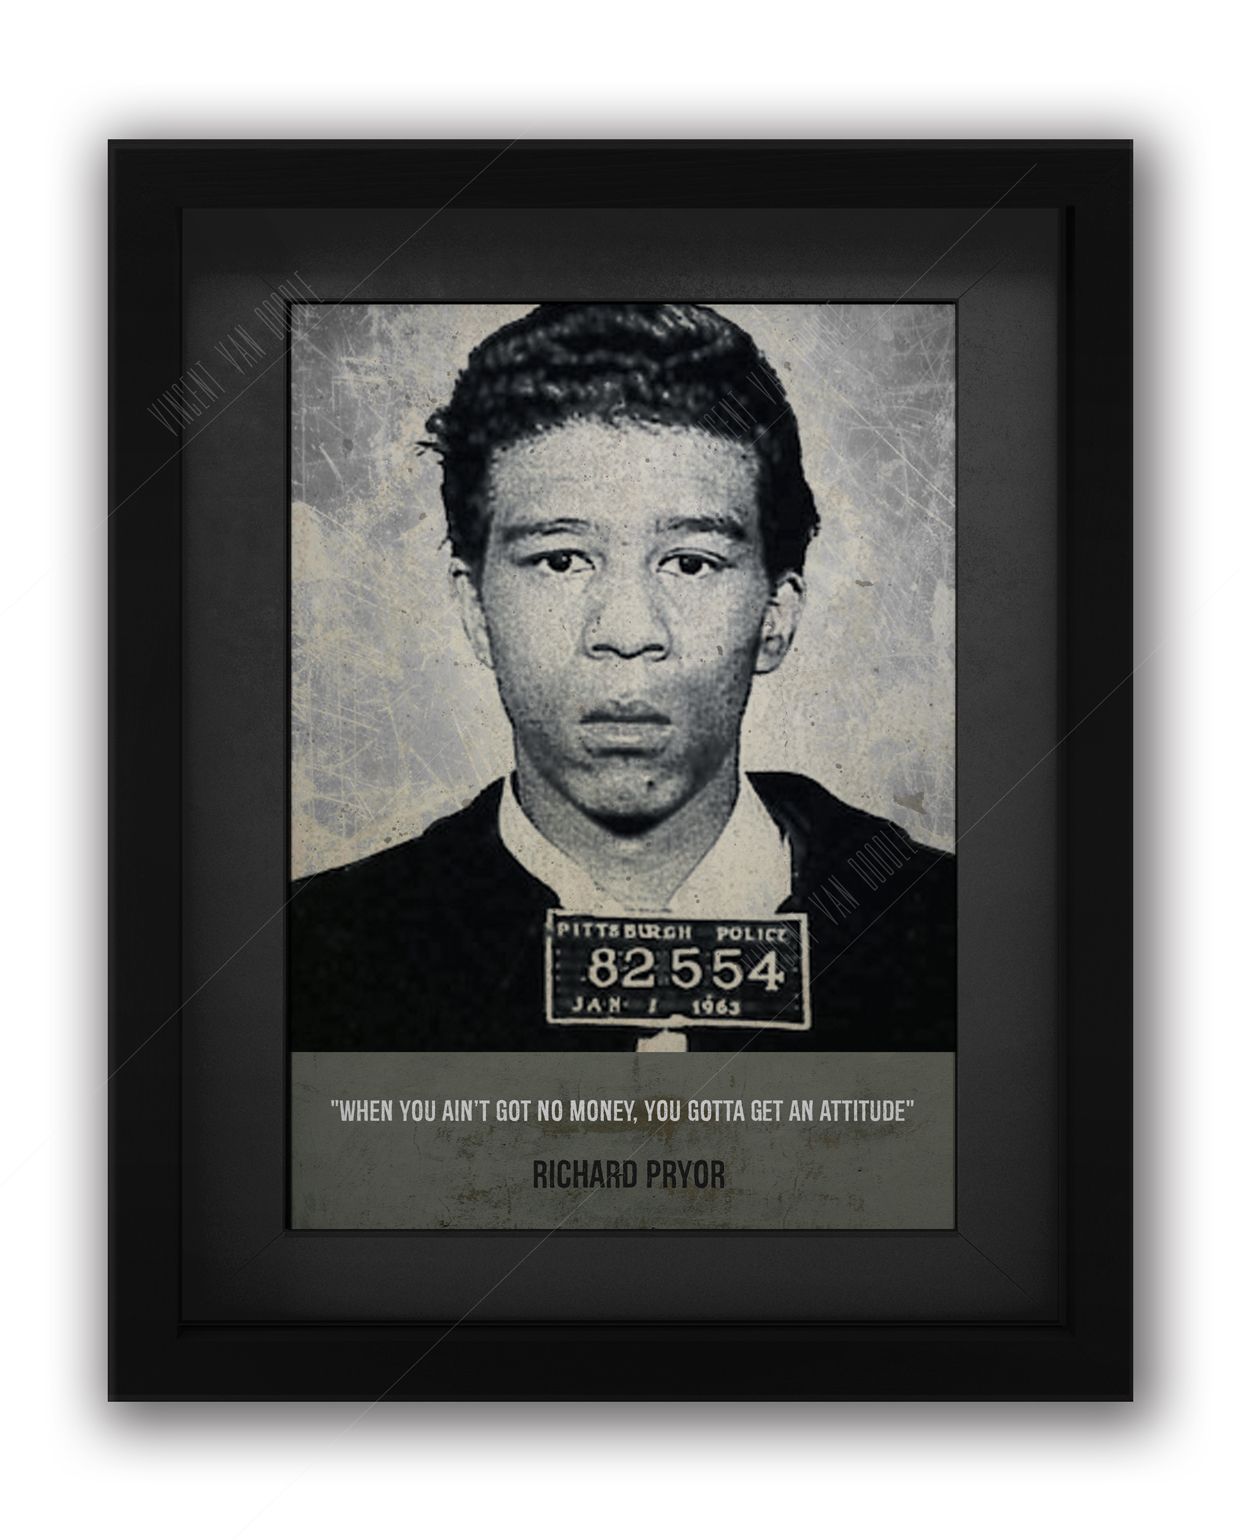 Richard Pryor Mugshot Print